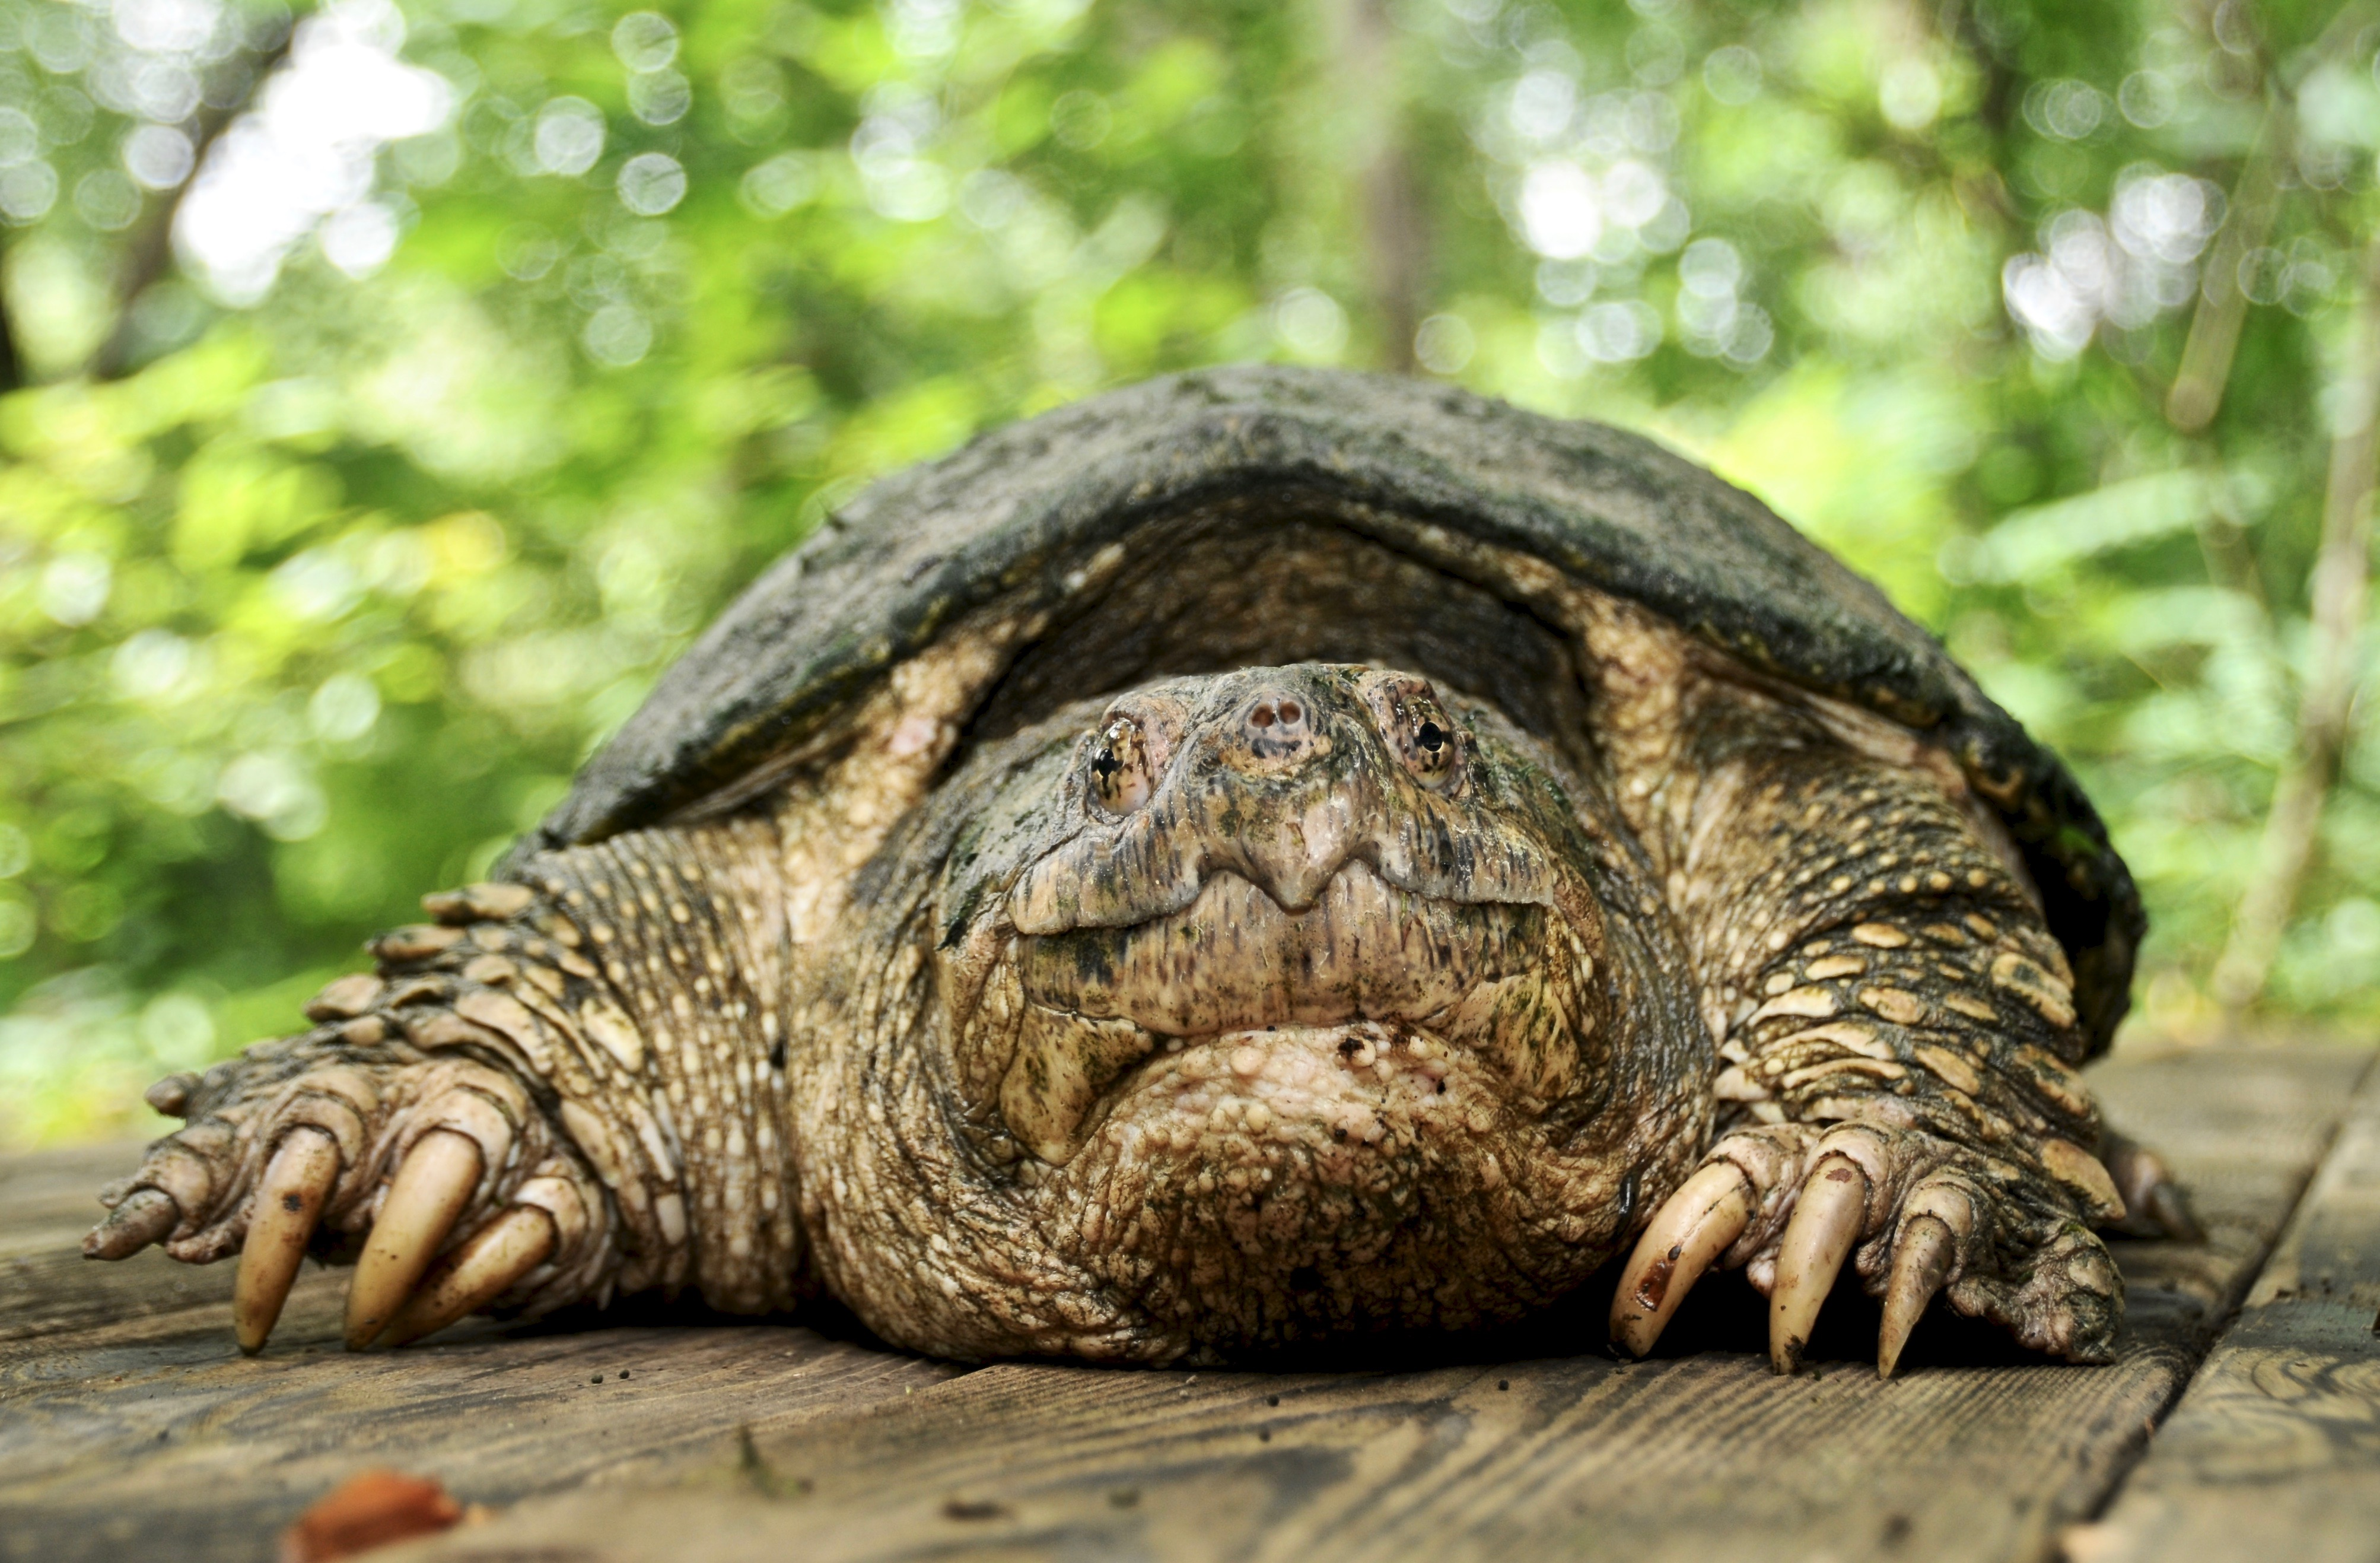 Common Snapping Turtle 102